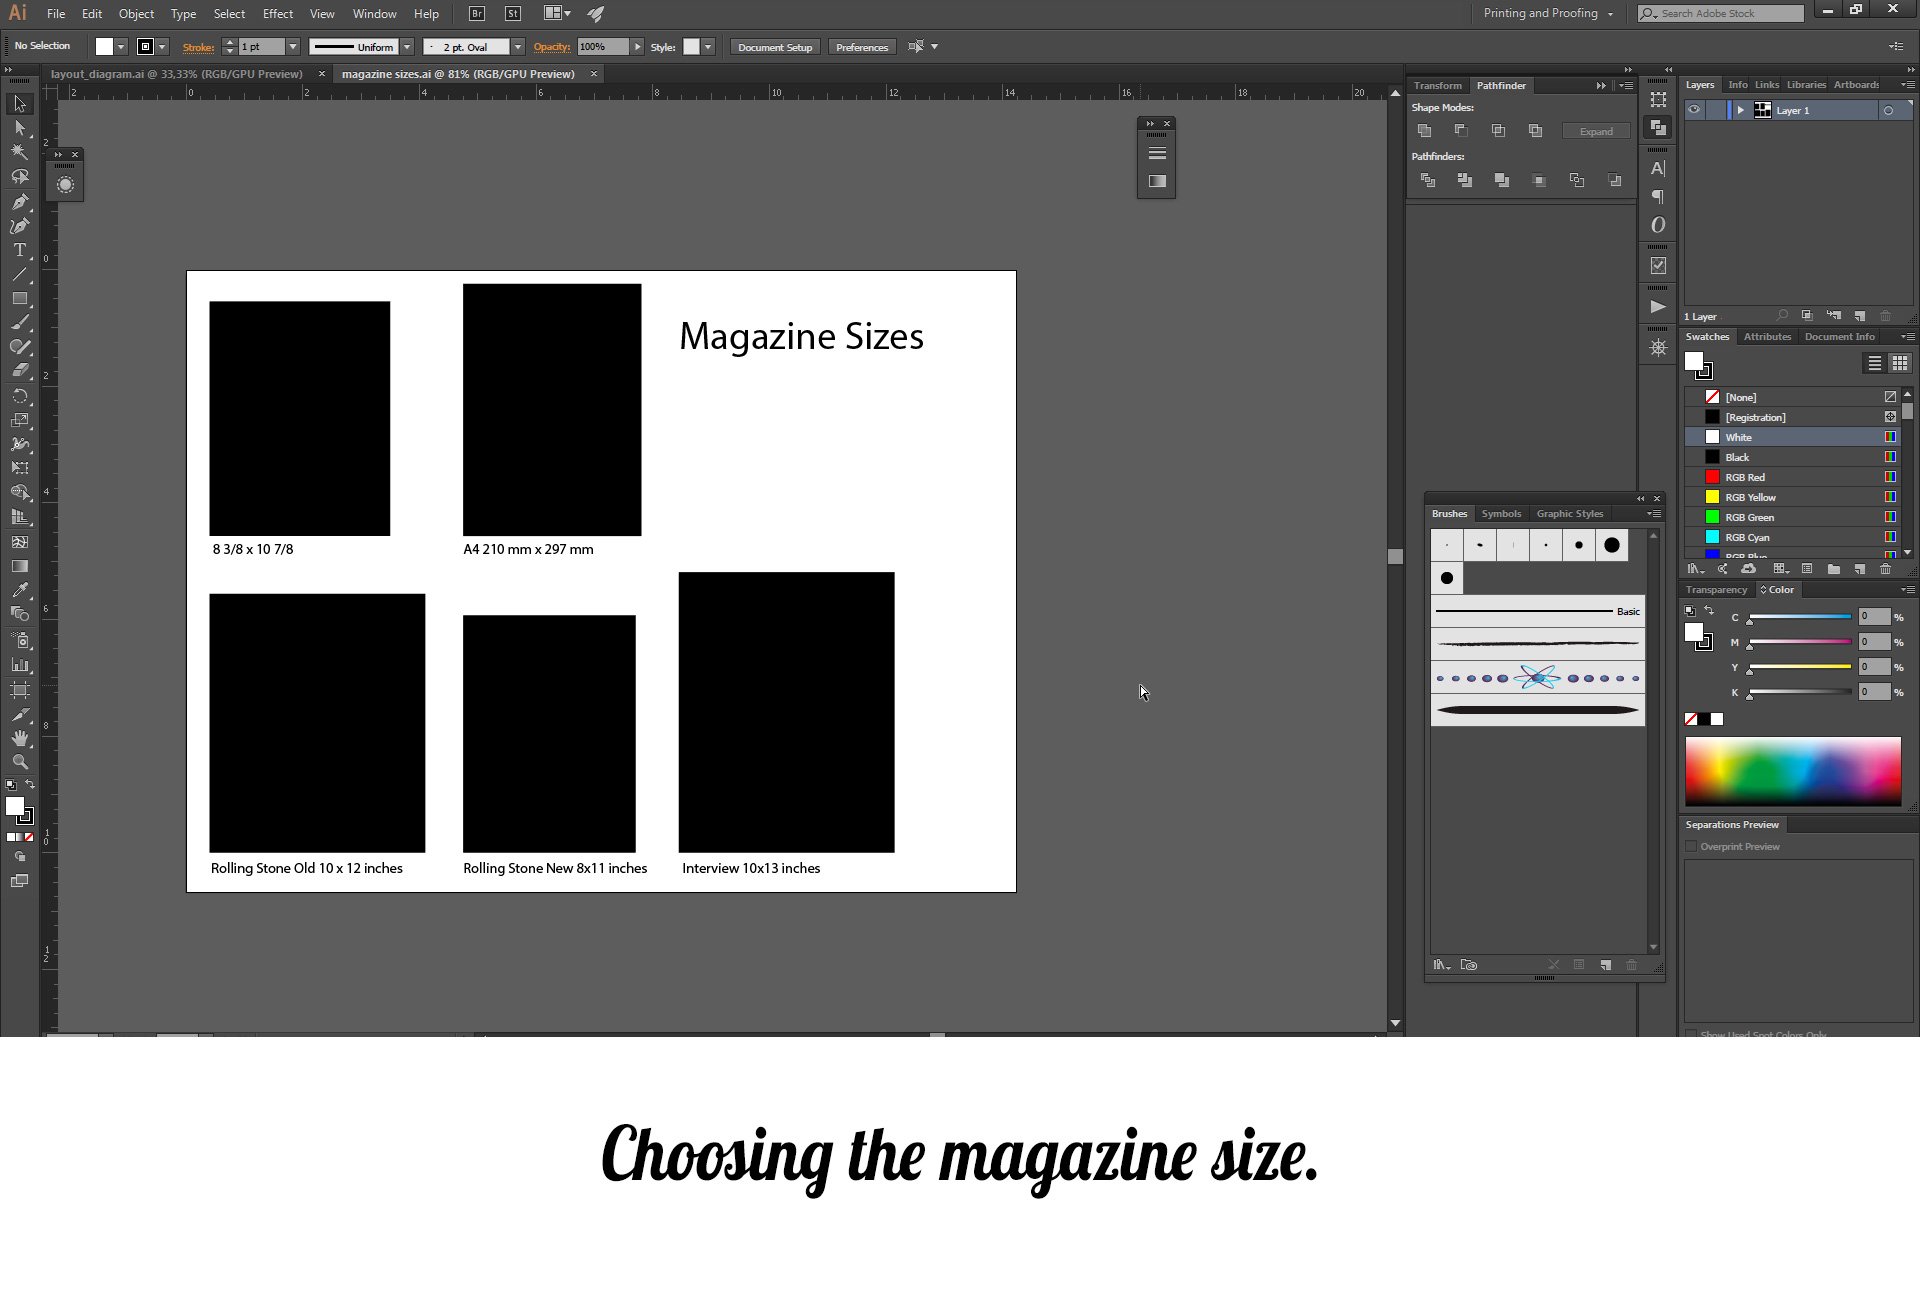 choosing-the-magazine-size